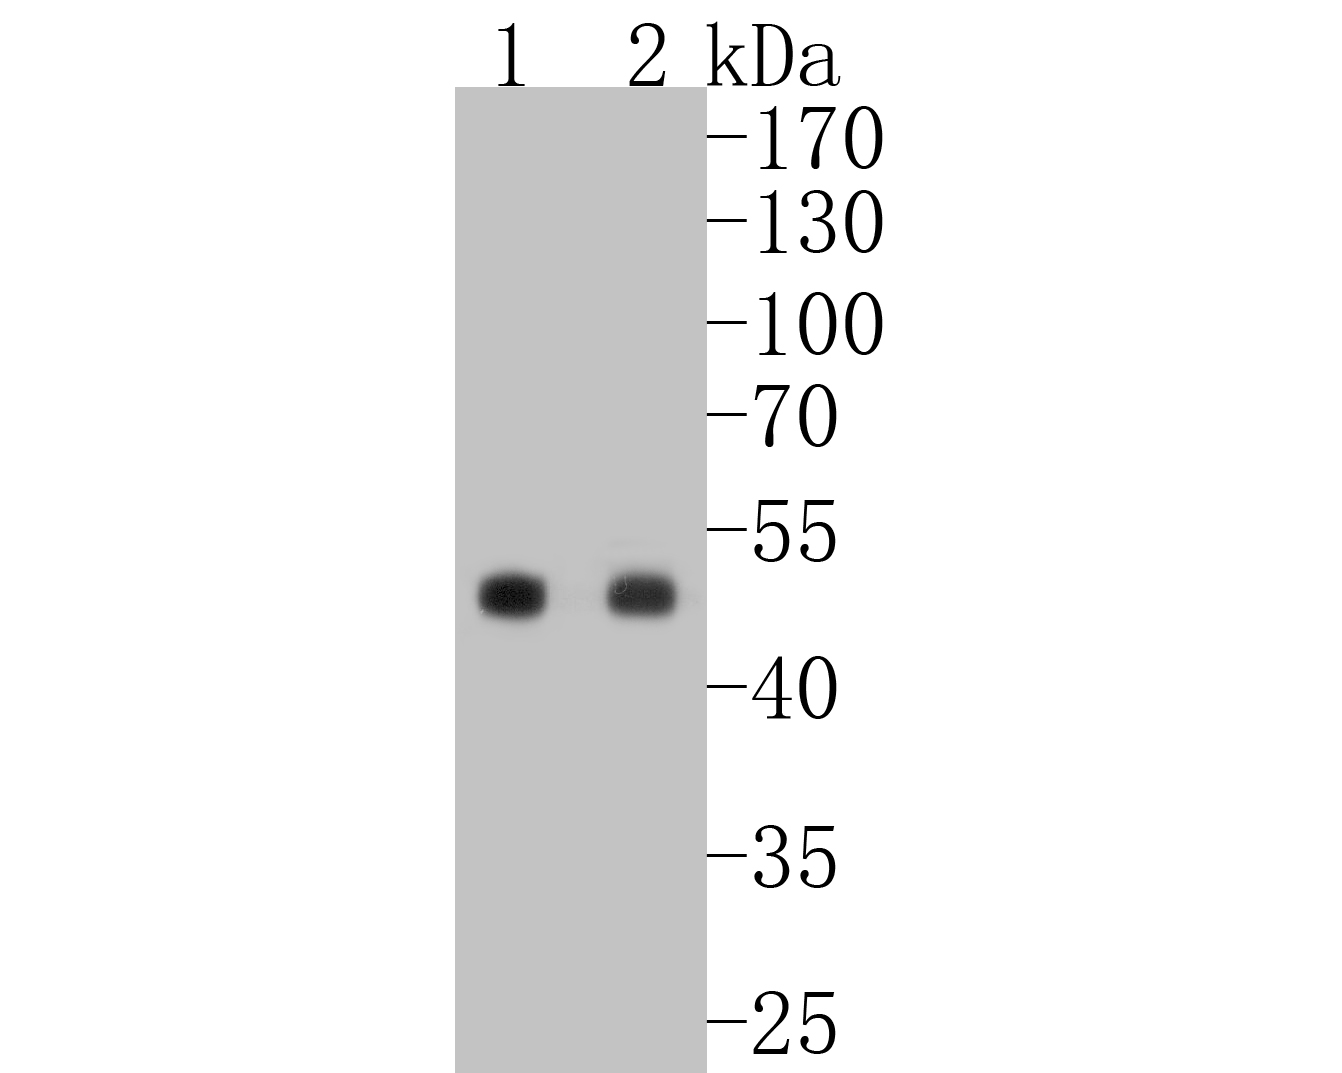 Western blot analysis of PAX6 on different lysates. Proteins were transferred to a PVDF membrane and blocked with 5% BSA in PBS for 1 hour at room temperature. The primary antibody (ET1612-58, 1/500) was used in 5% BSA at room temperature for 2 hours. Goat Anti-Rabbit IgG - HRP Secondary Antibody (HA1001) at 1:5,000 dilution was used for 1 hour at room temperature.<br /> Positive control: <br /> Lane 1: K562 cell lysate<br /> Lane 2: Hela cell lysate